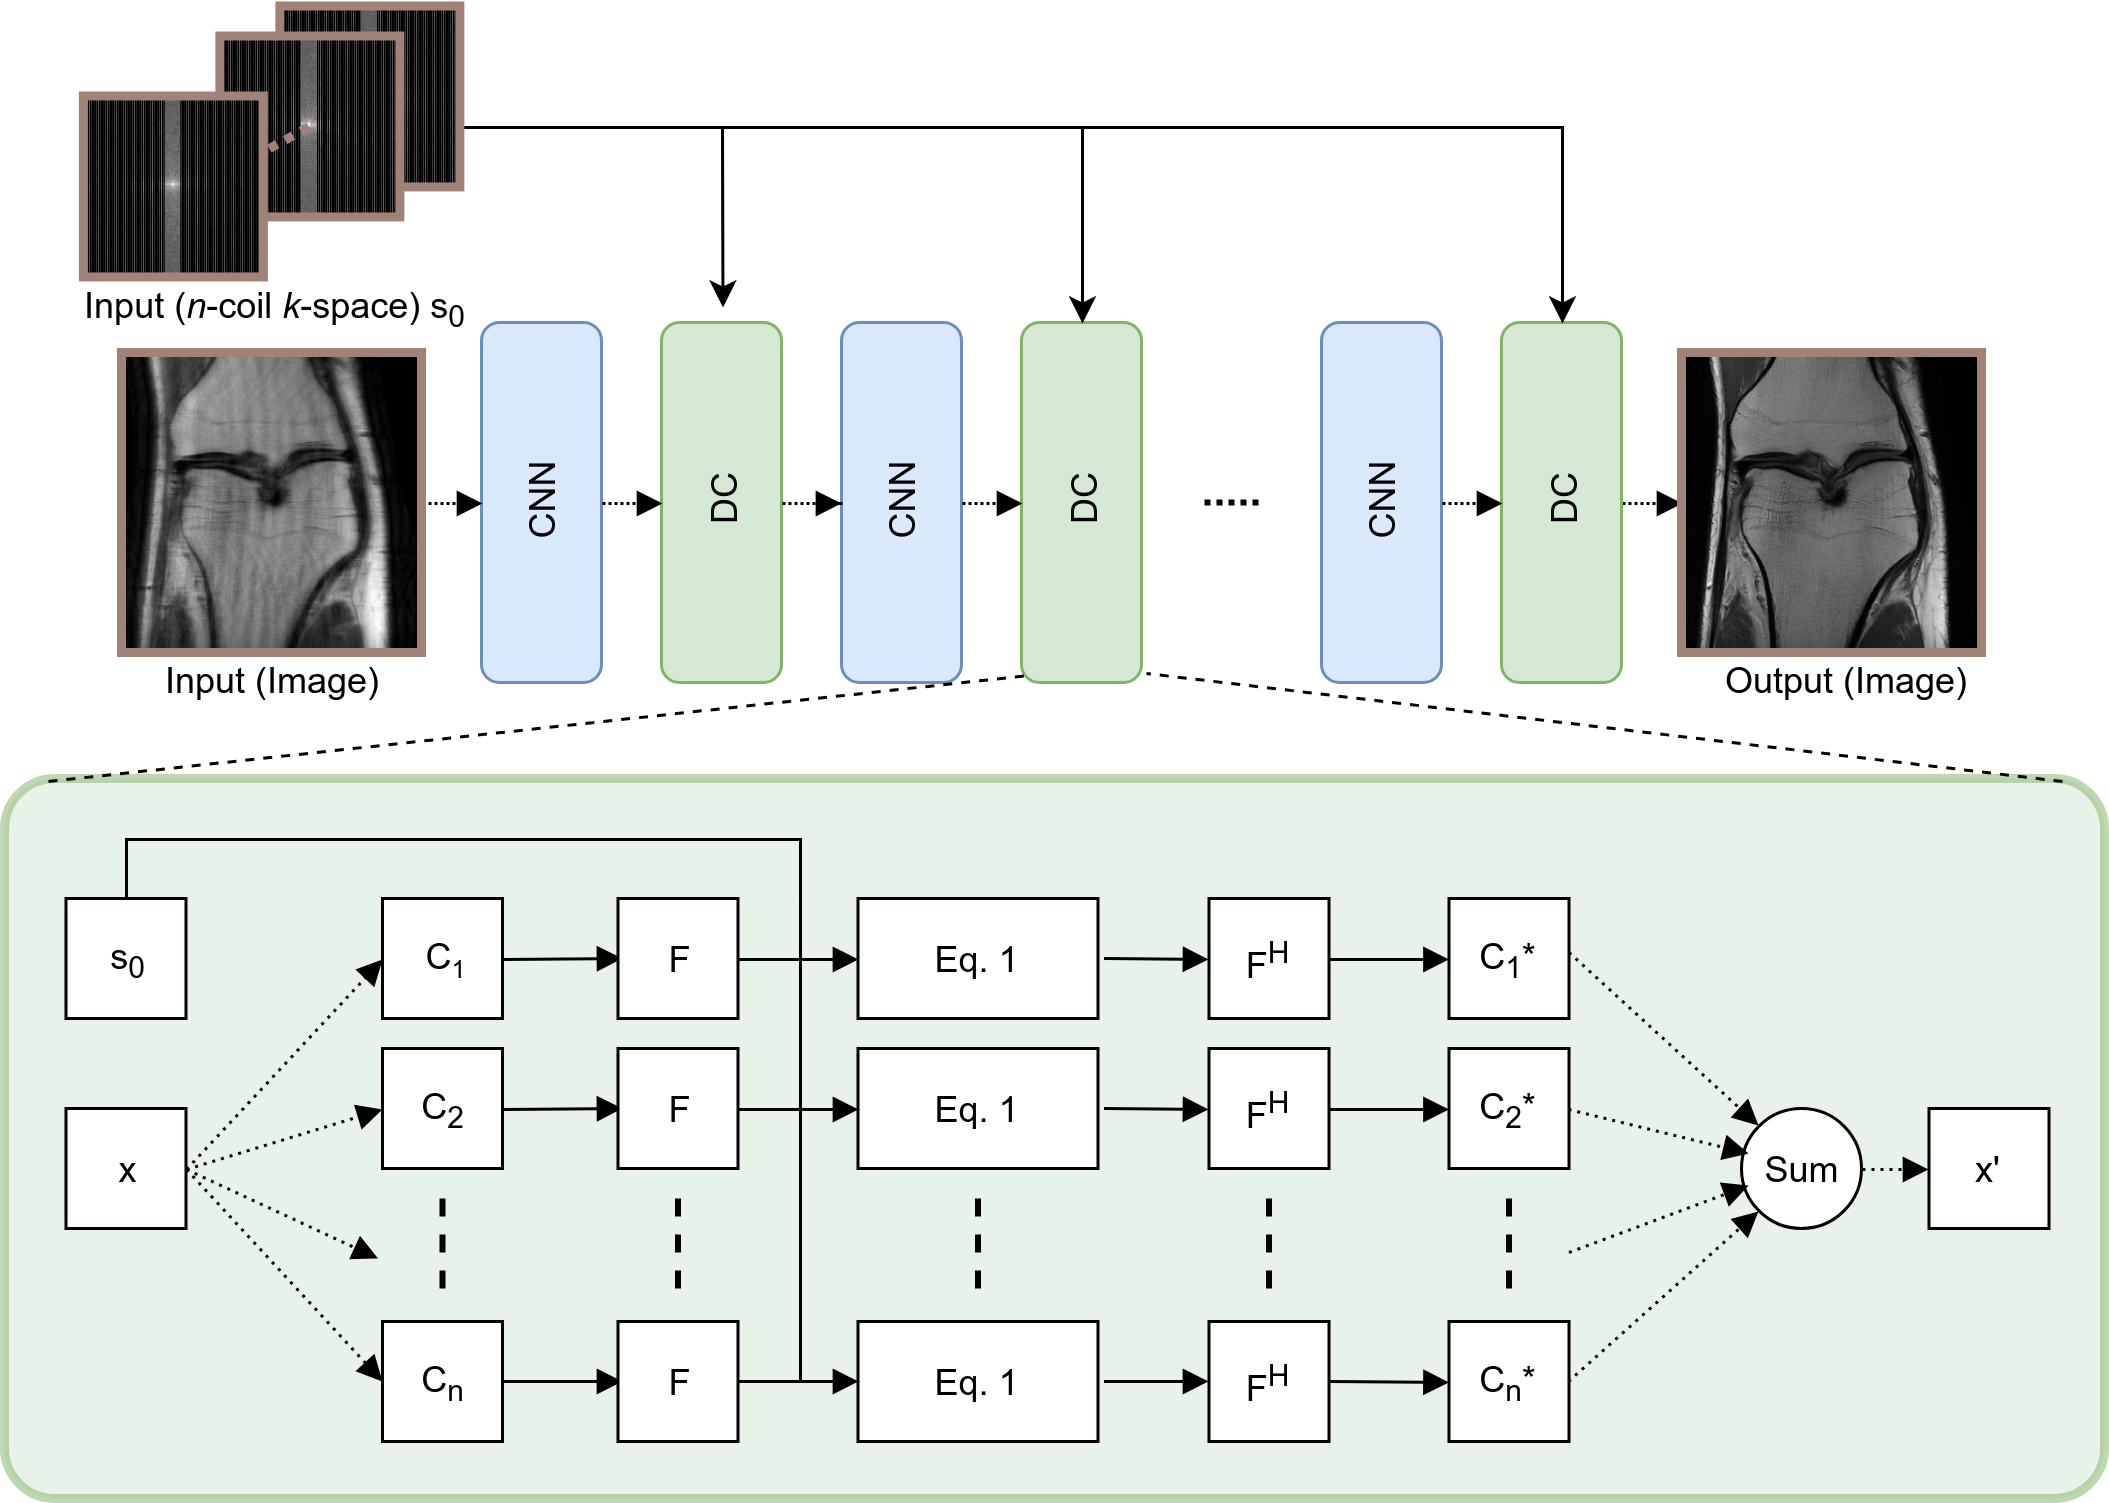 The proposed network architectures. (left) D-POCSENSE architecture. The input to the CNN is a single, sensitivity-weighted recombined image. At each iteration, the CNN updates an estimate of the combined image. The sub-network takes a single recombined image as an input and produces the denoised result as an output. The data consistency is performed by mapping the intermediate output to the raw